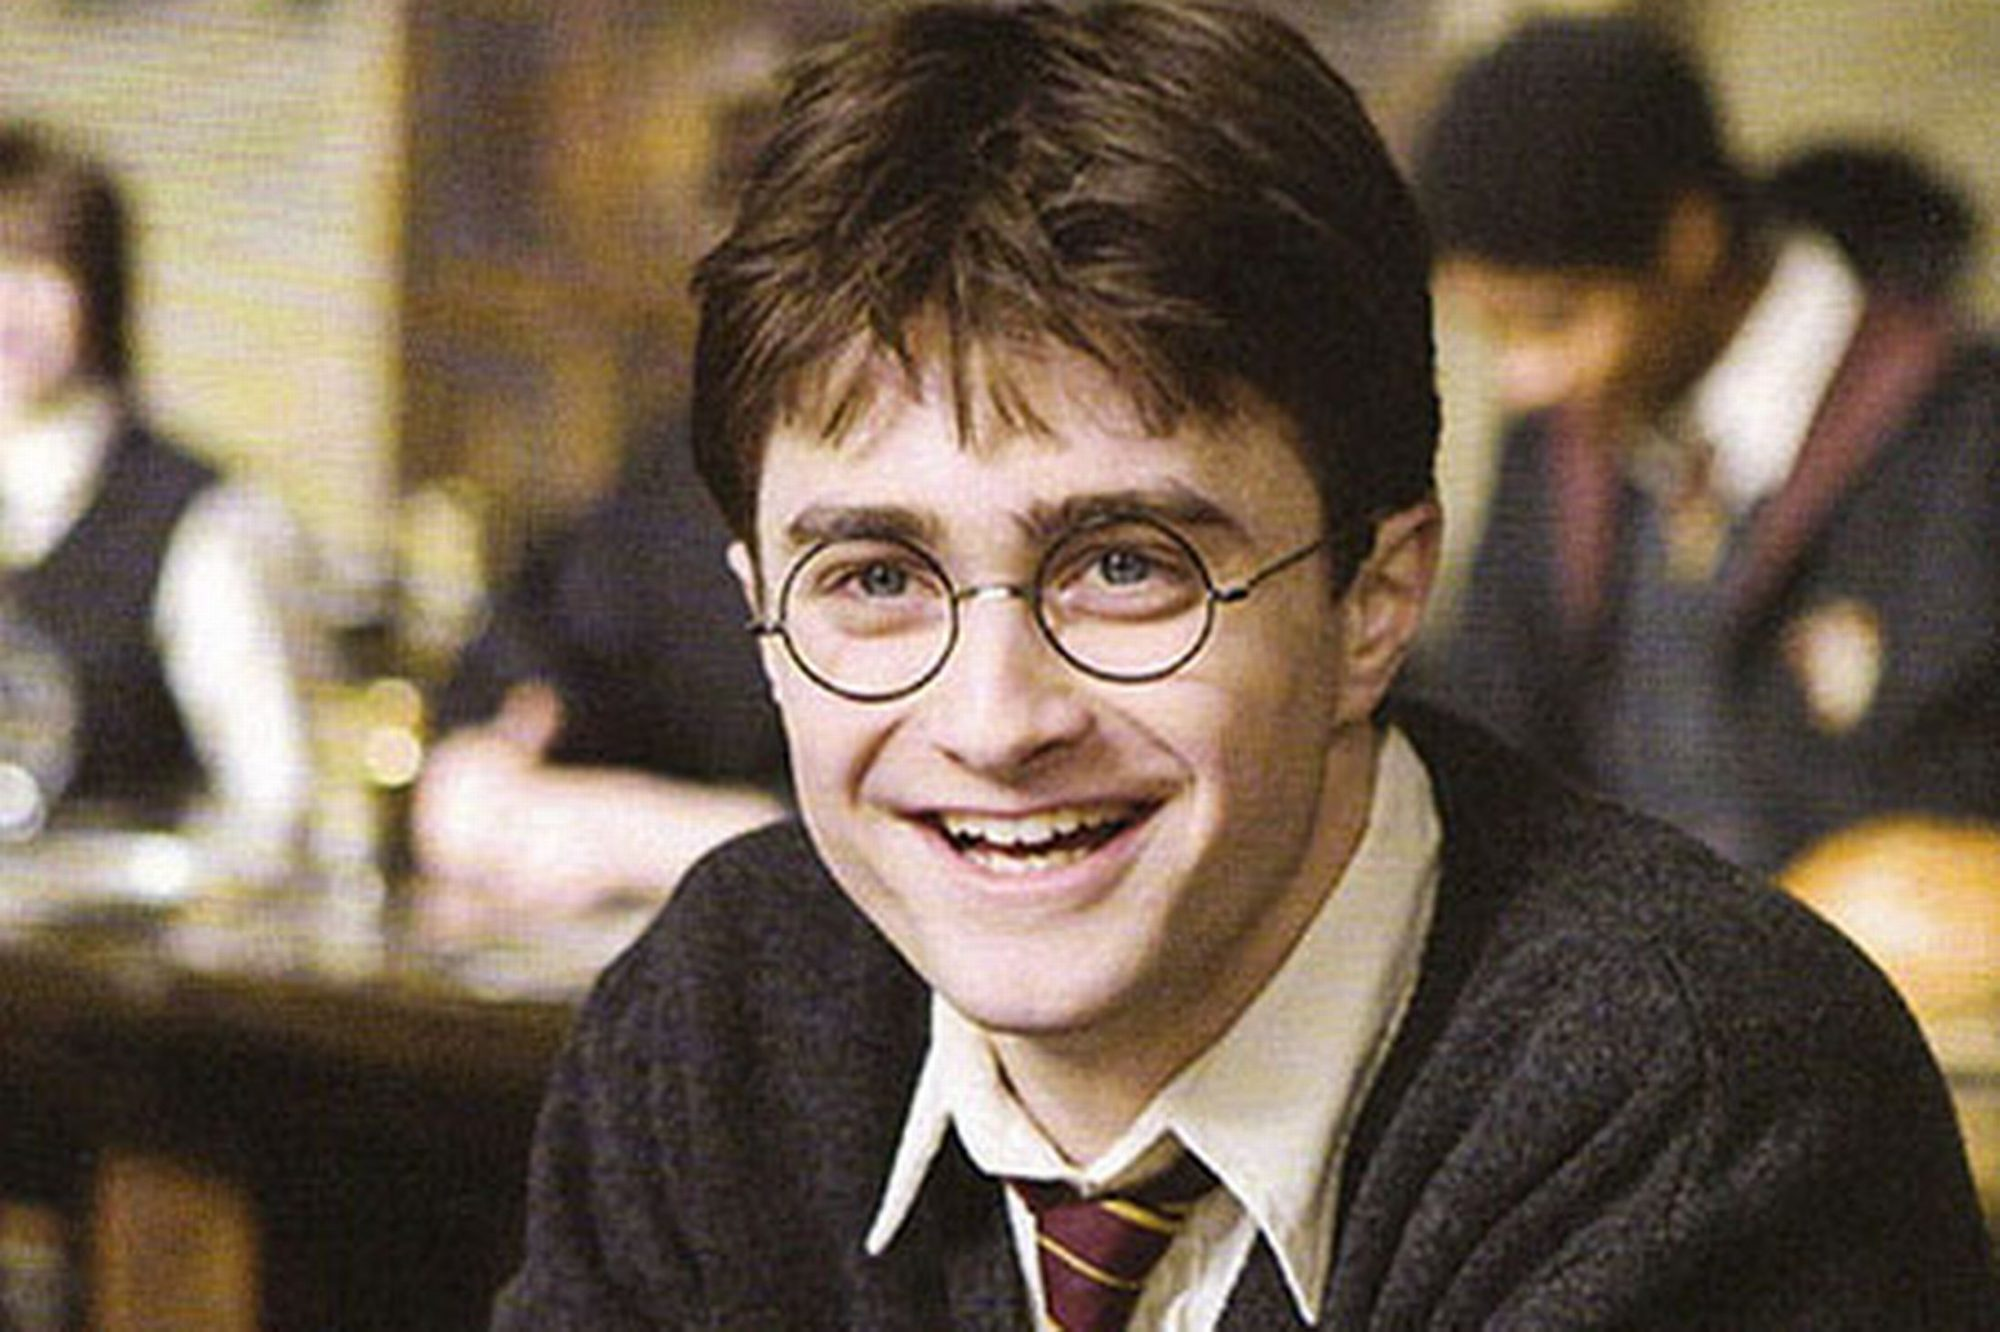 harry-potter-pic-movie-publicity-708841040